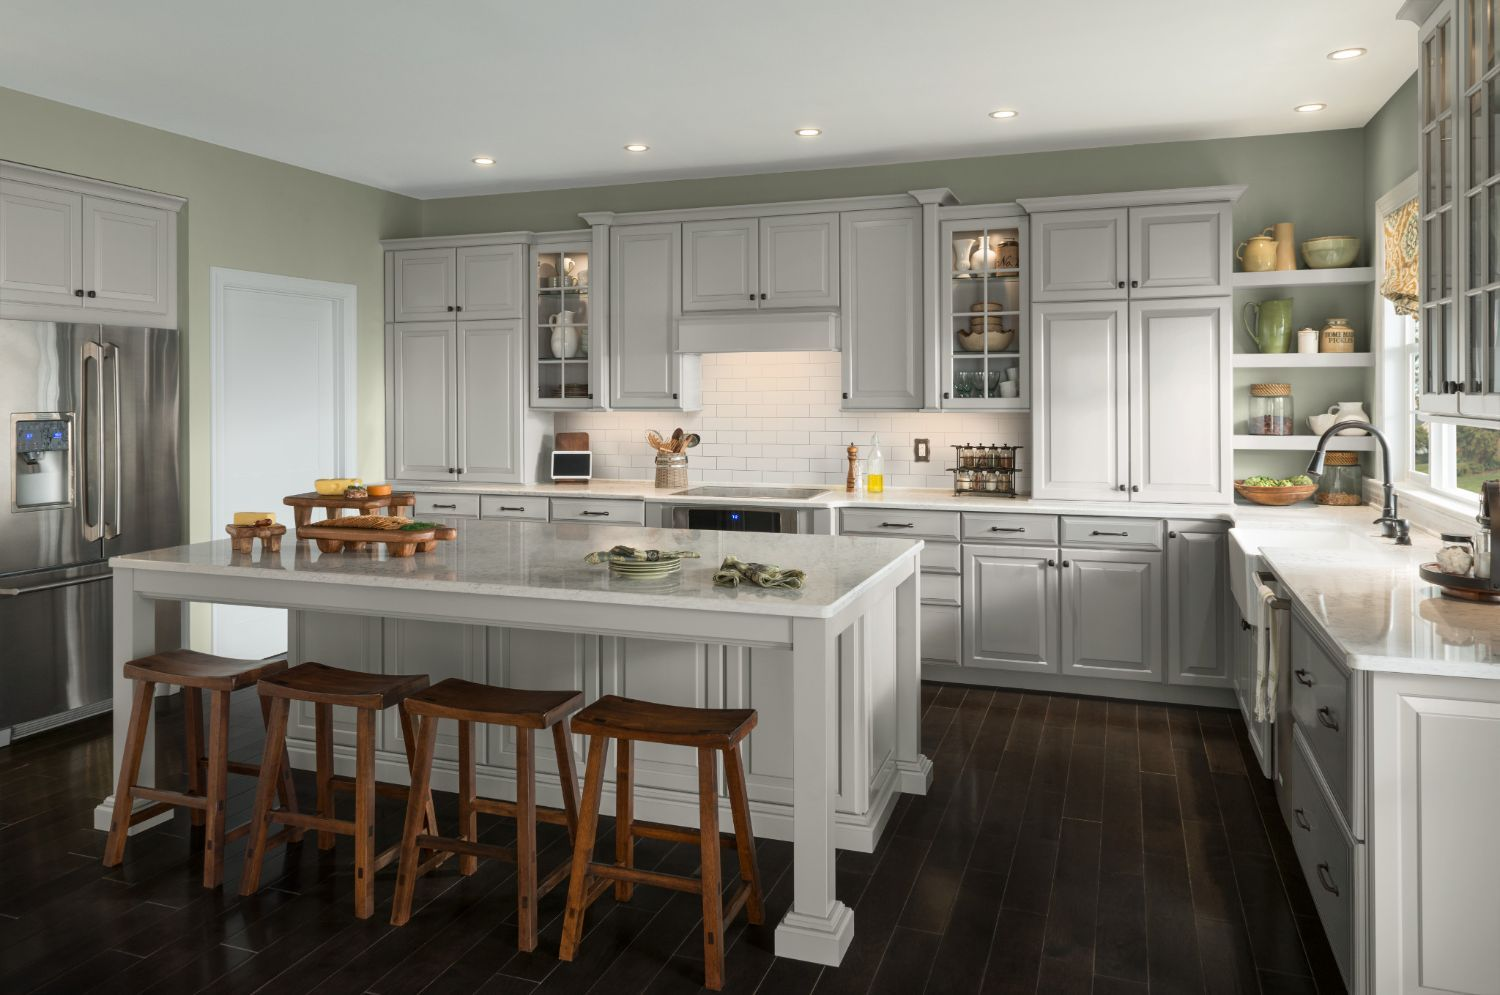 Charlottesville Collection American Woodmark Kitchen Cabinet Styles Kitchen Style Quality Kitchen Cabinets